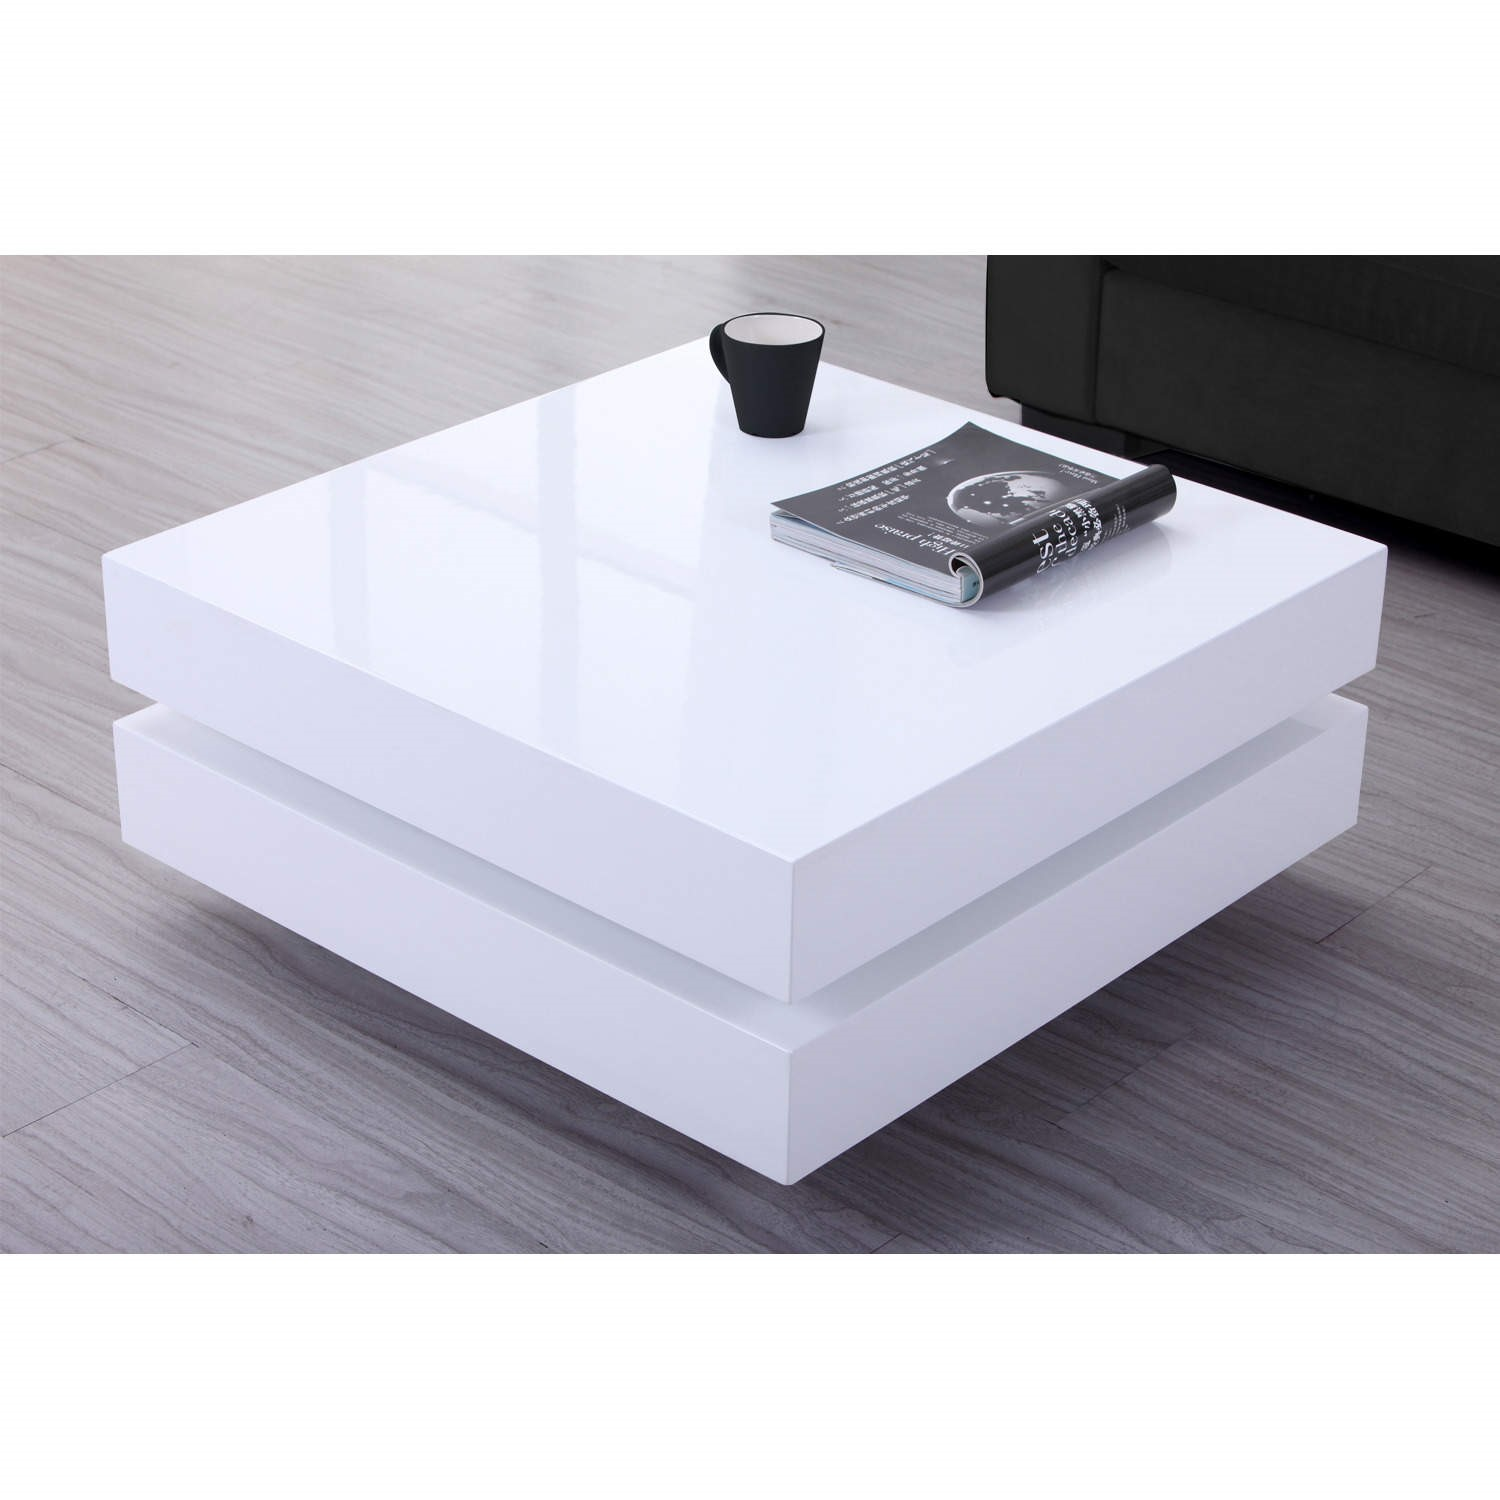 Annika White Gloss Coffee Table: High Gloss White Coffee Table With LED Lighting